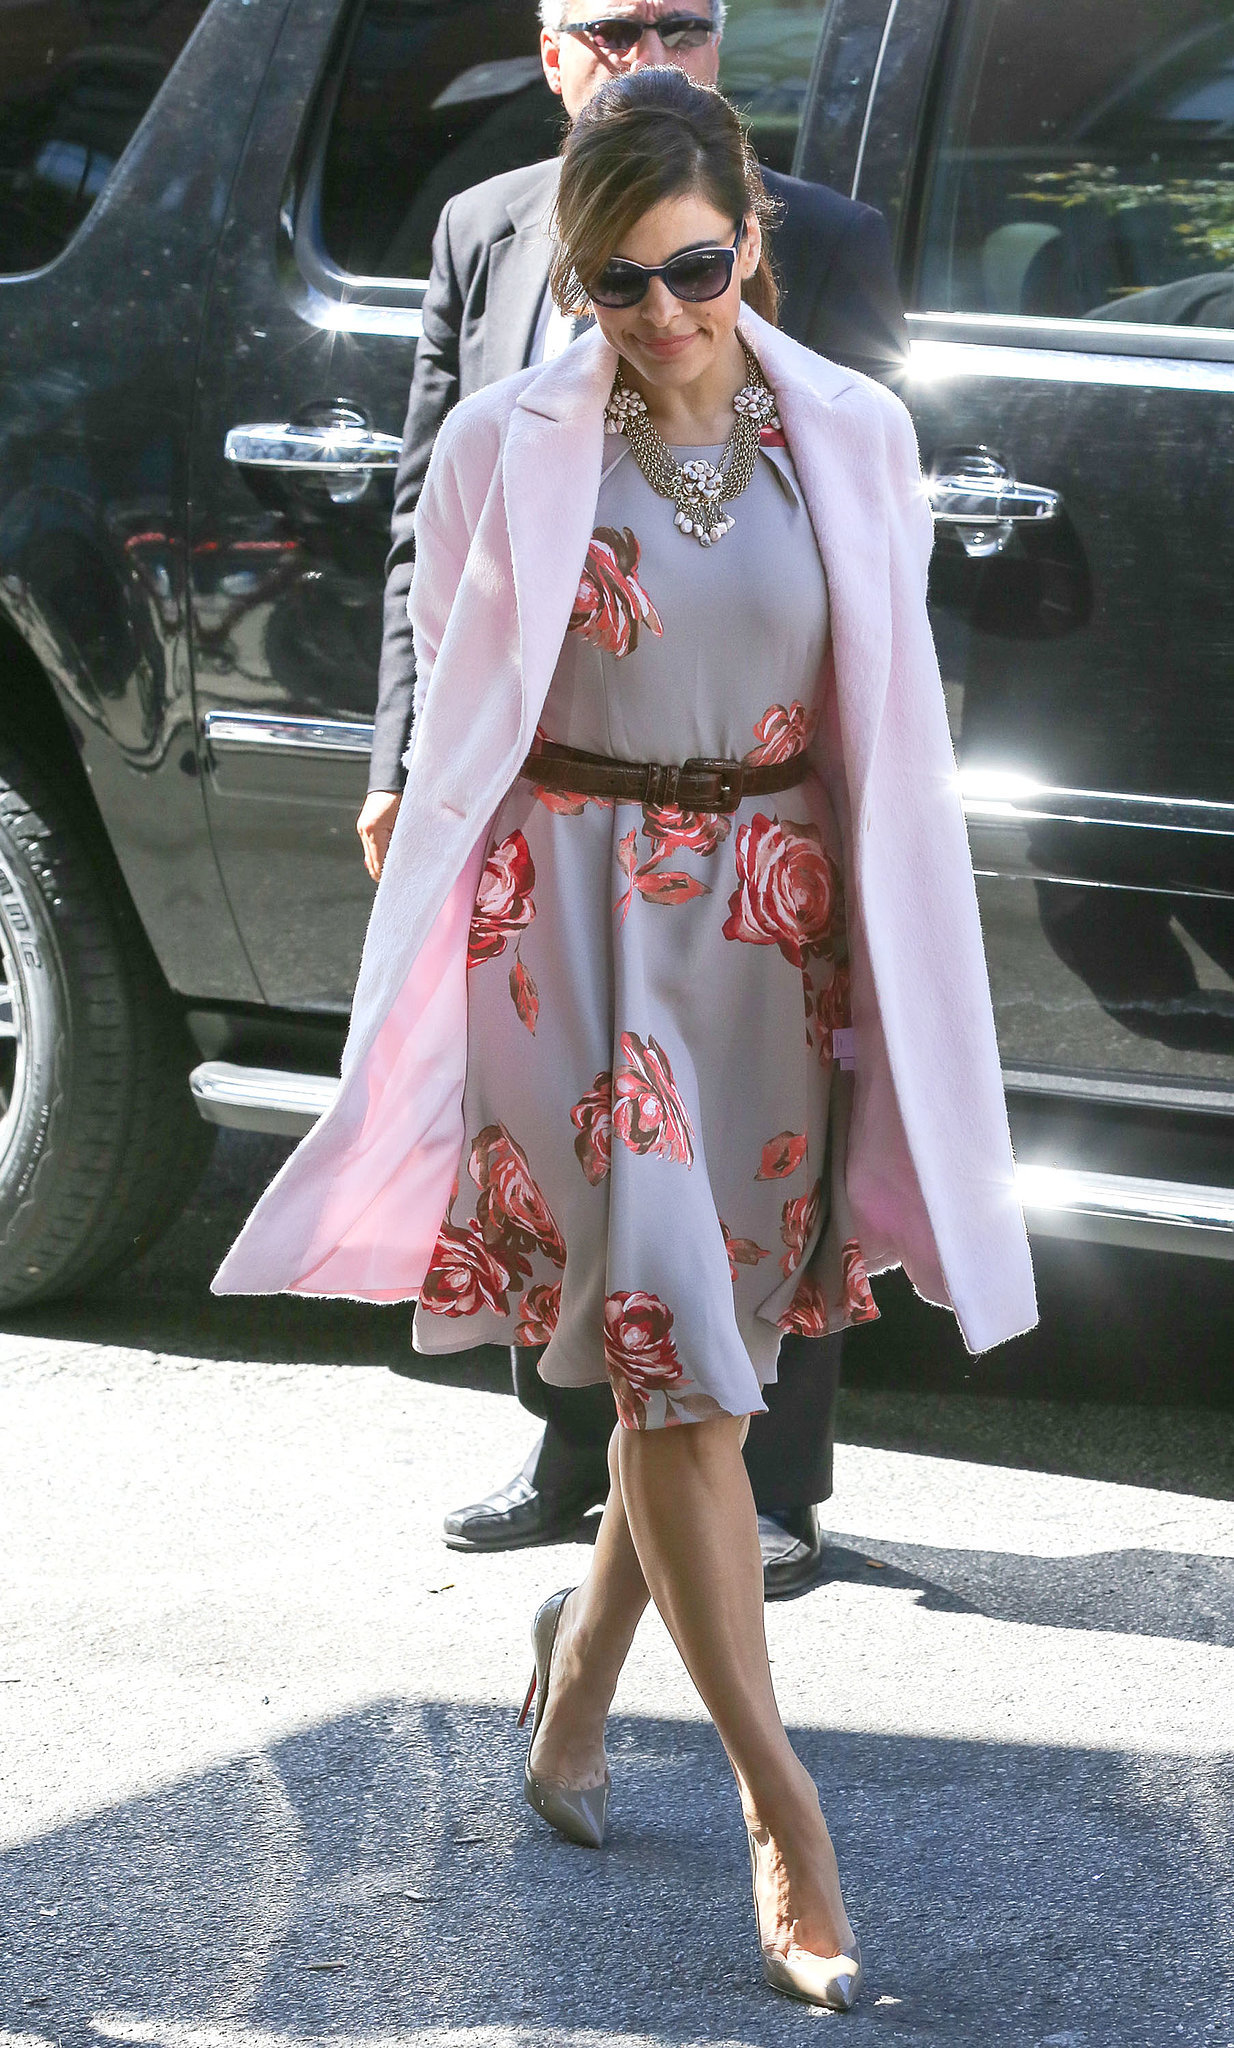 Donning one of her own blossoming creations from her New York & Co. collection, Eva Mendes looked